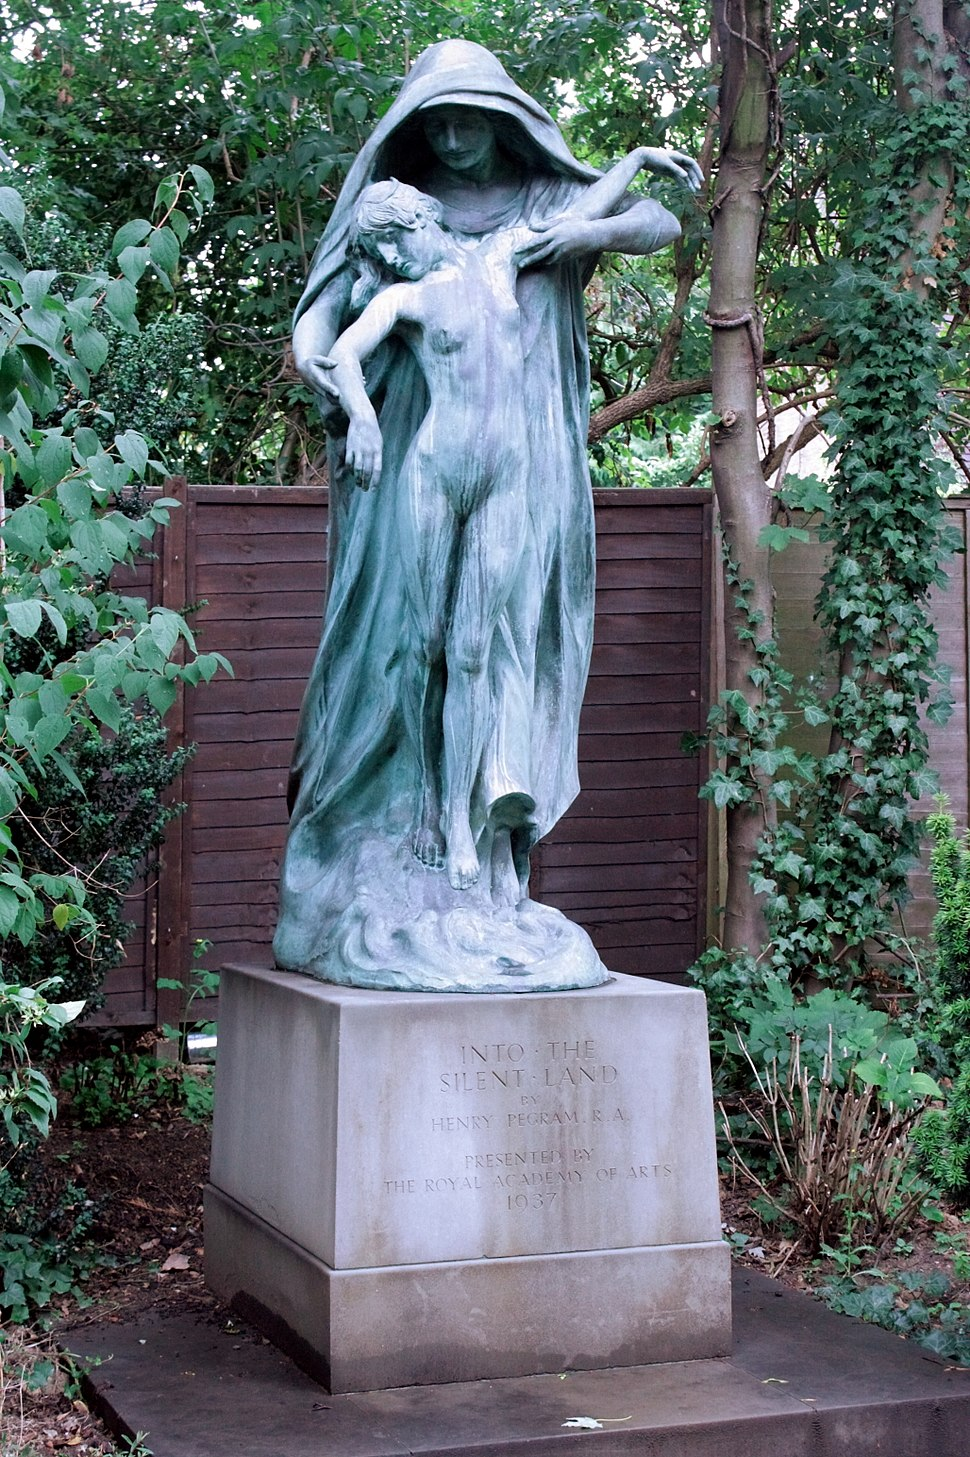 Into the Silent Land by Henry Pegram, Golders Green Crematorium